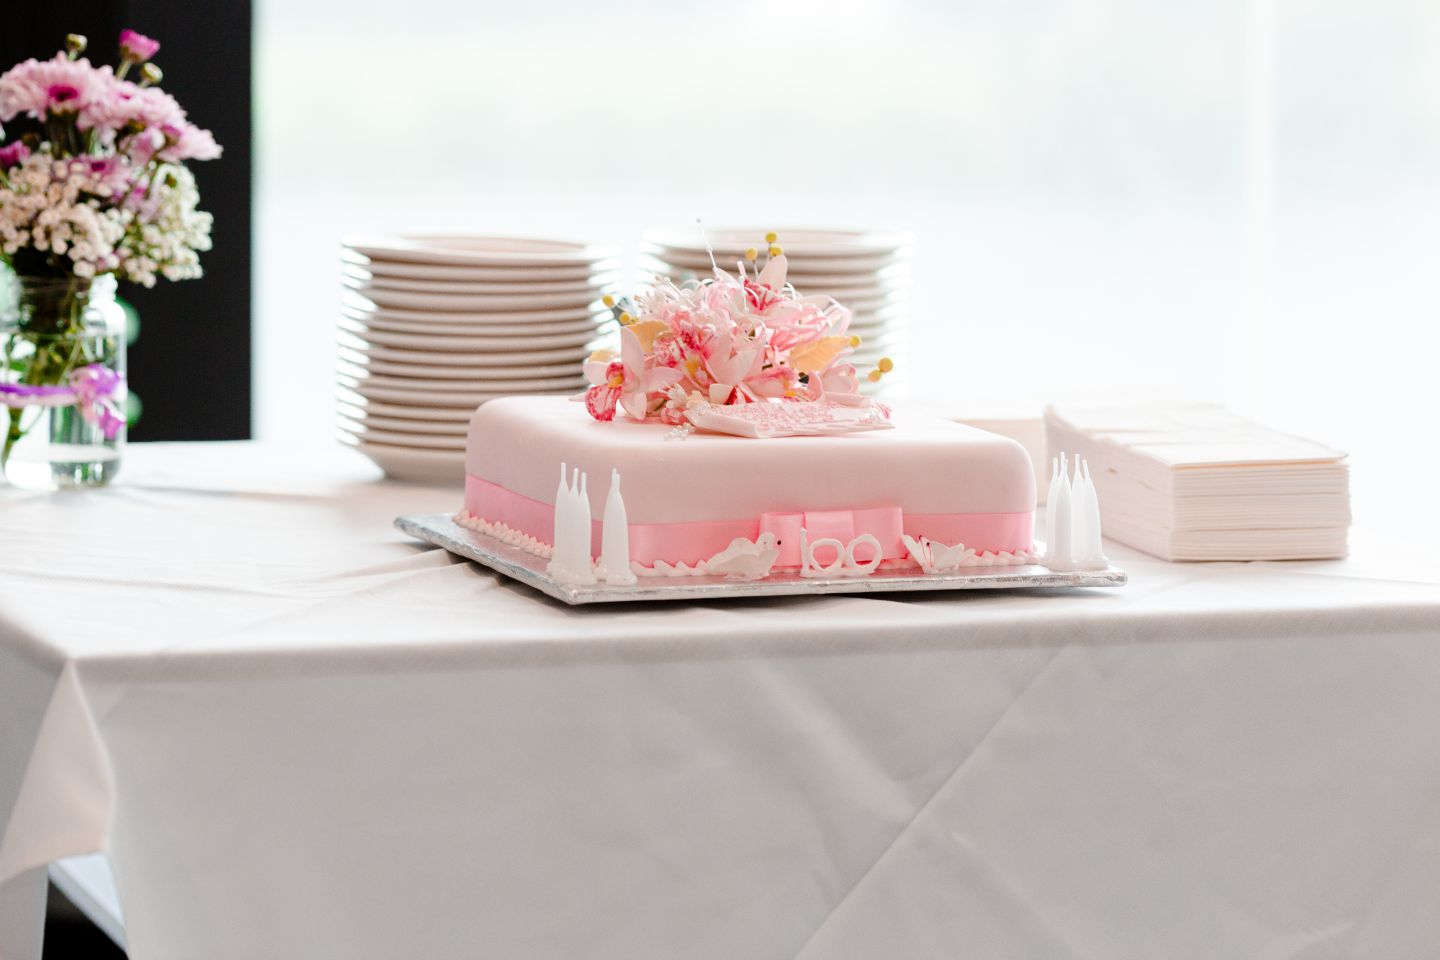 A gorgeous pink cake baked to celebrate a 100th birthday party.